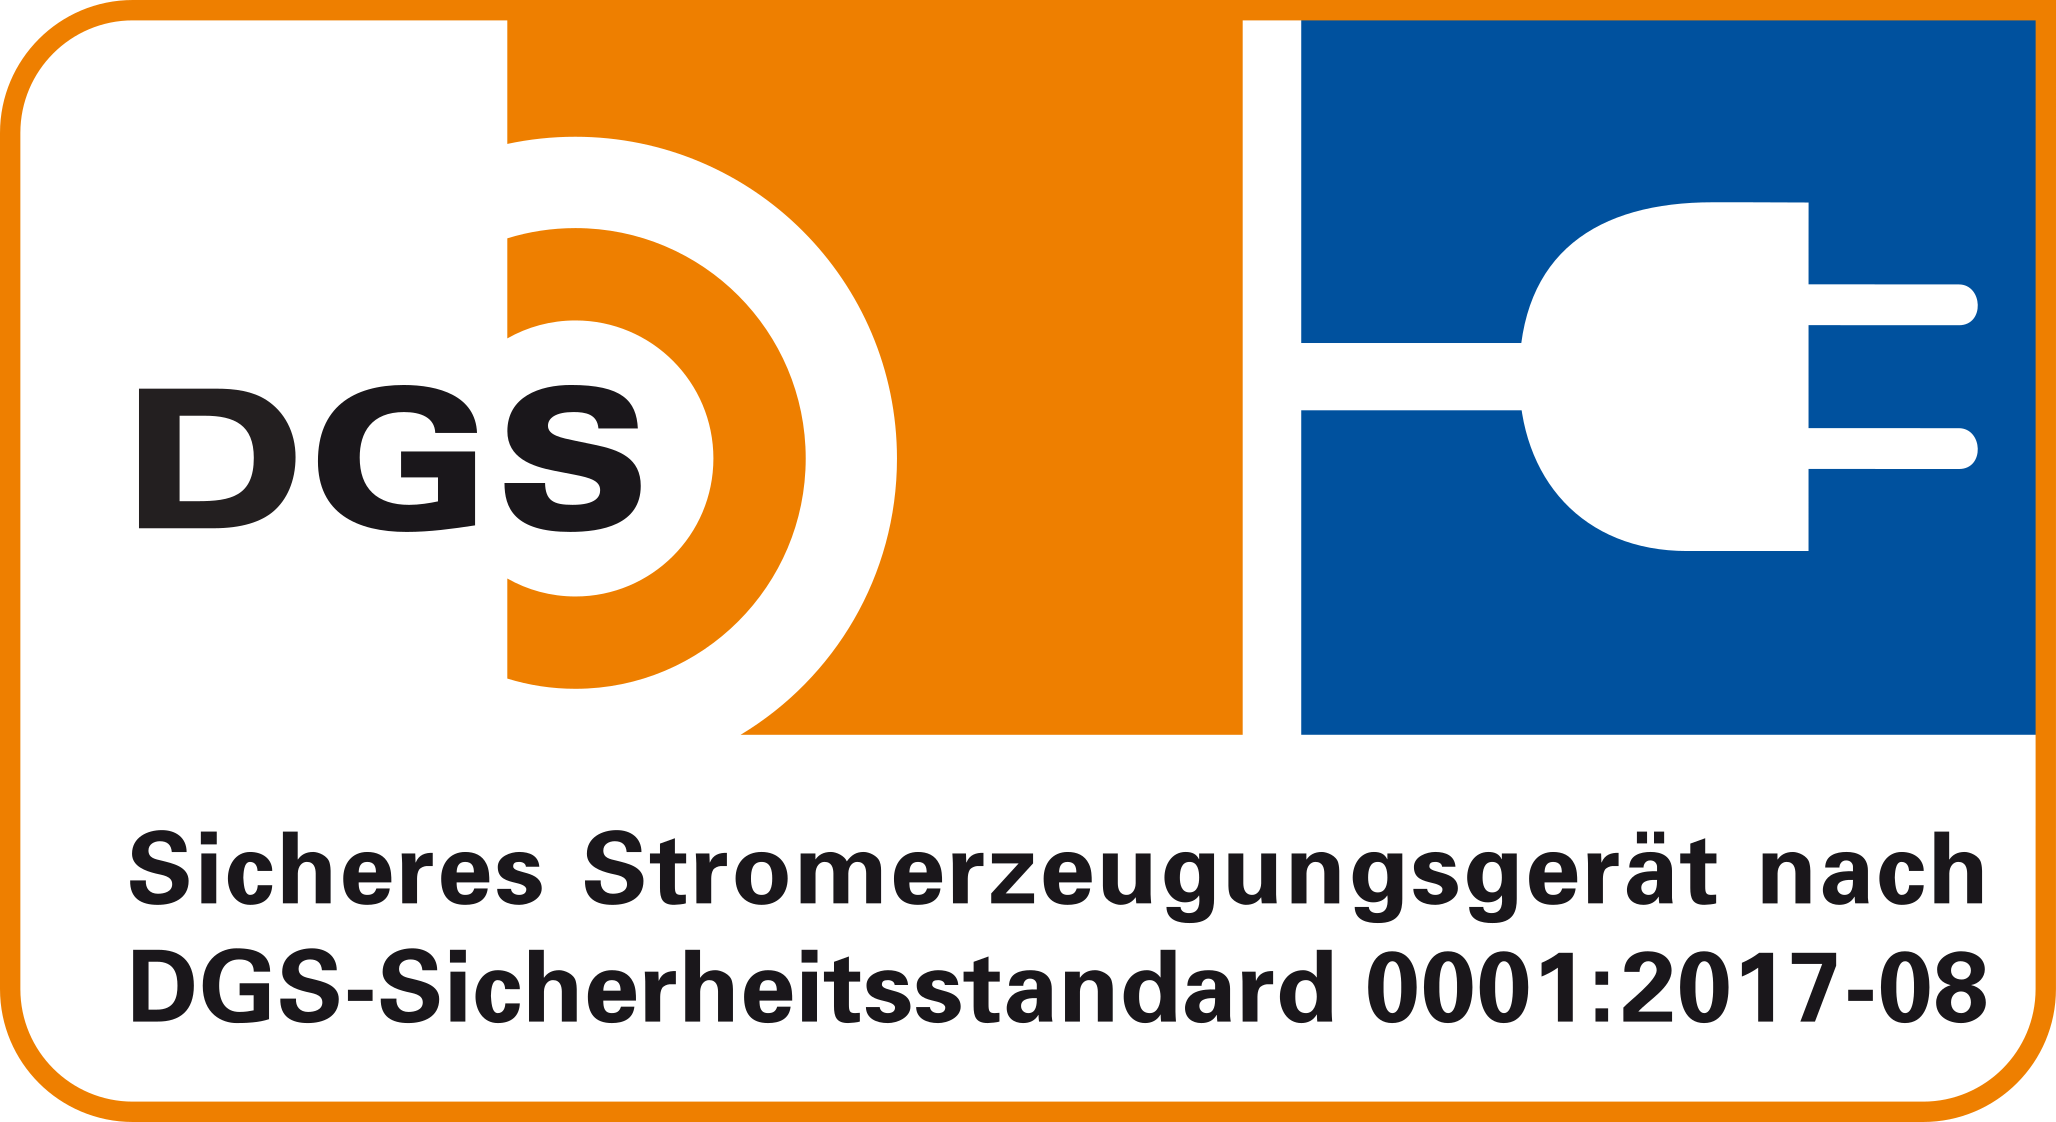 DGS-Label